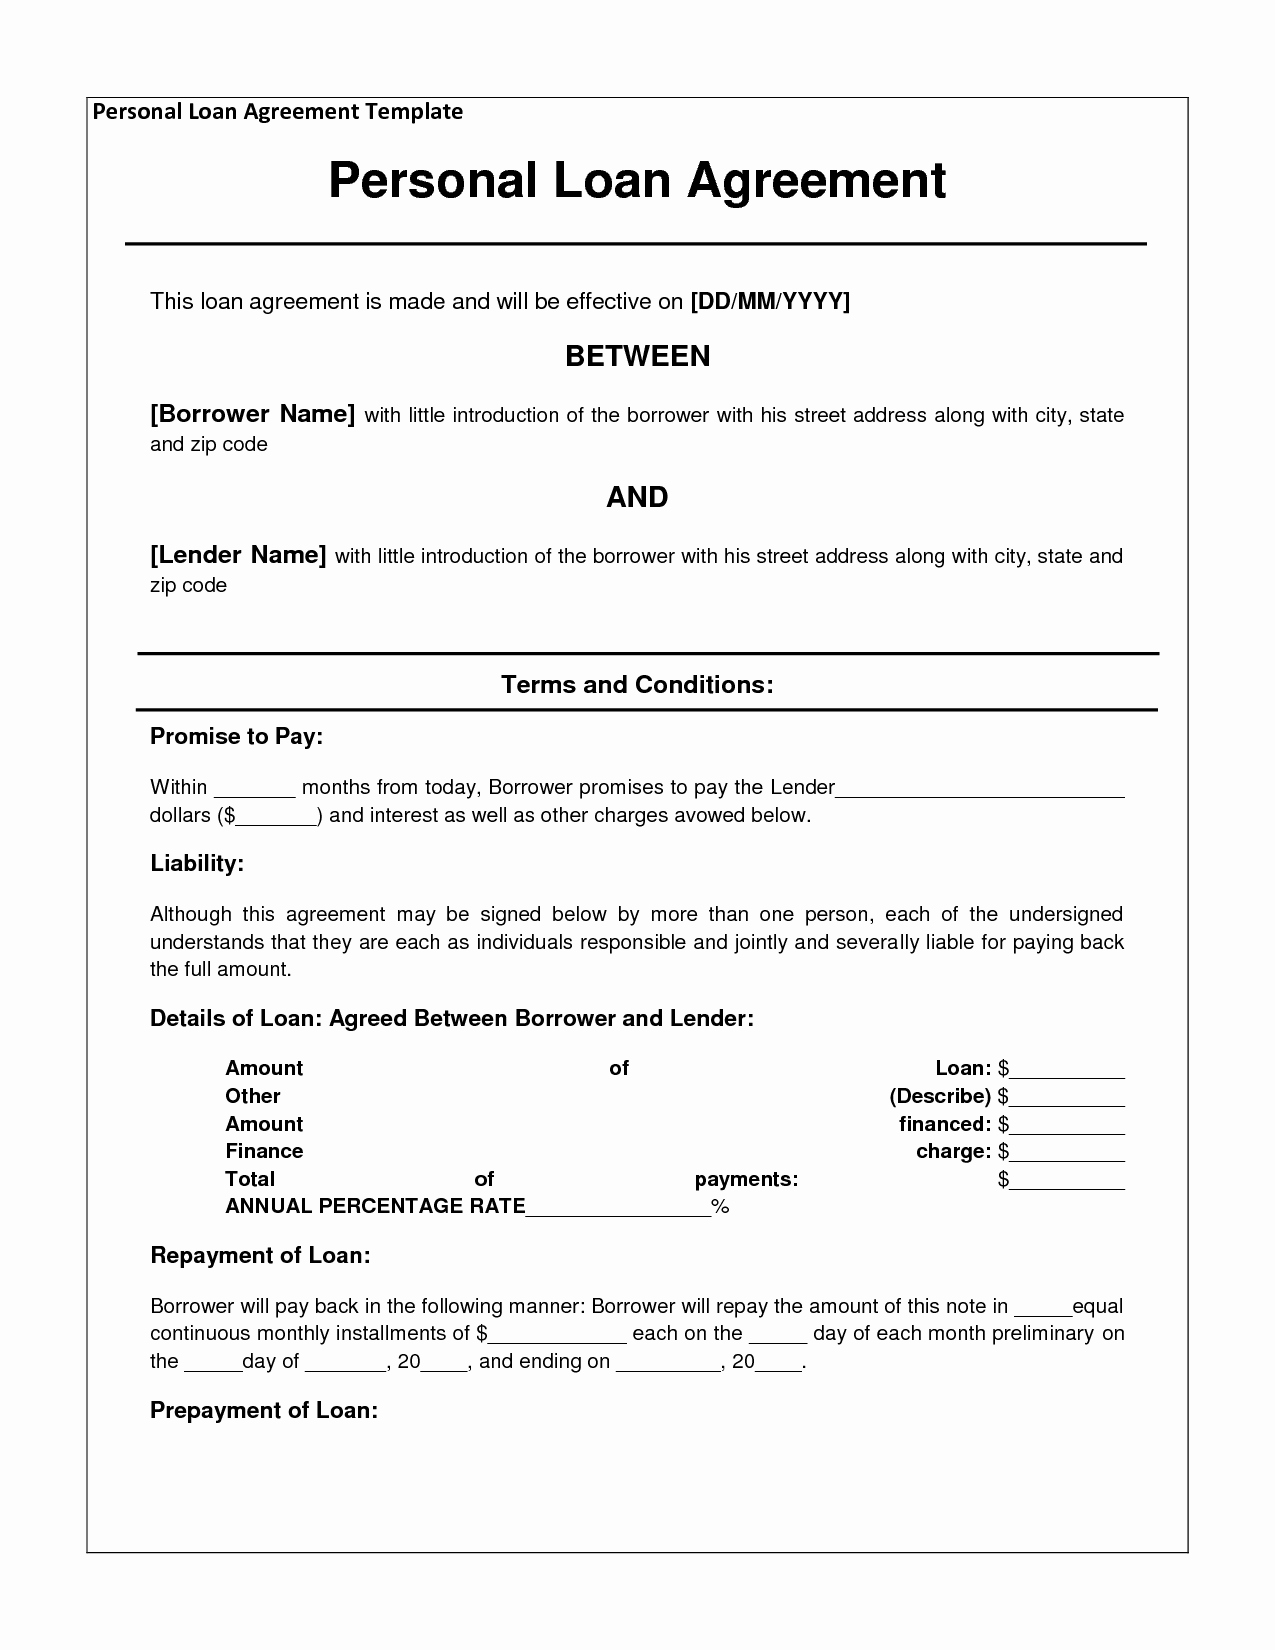 Simple Loan Agreement Pdf Elegant Free Personal Loan Agreement form Template $1000